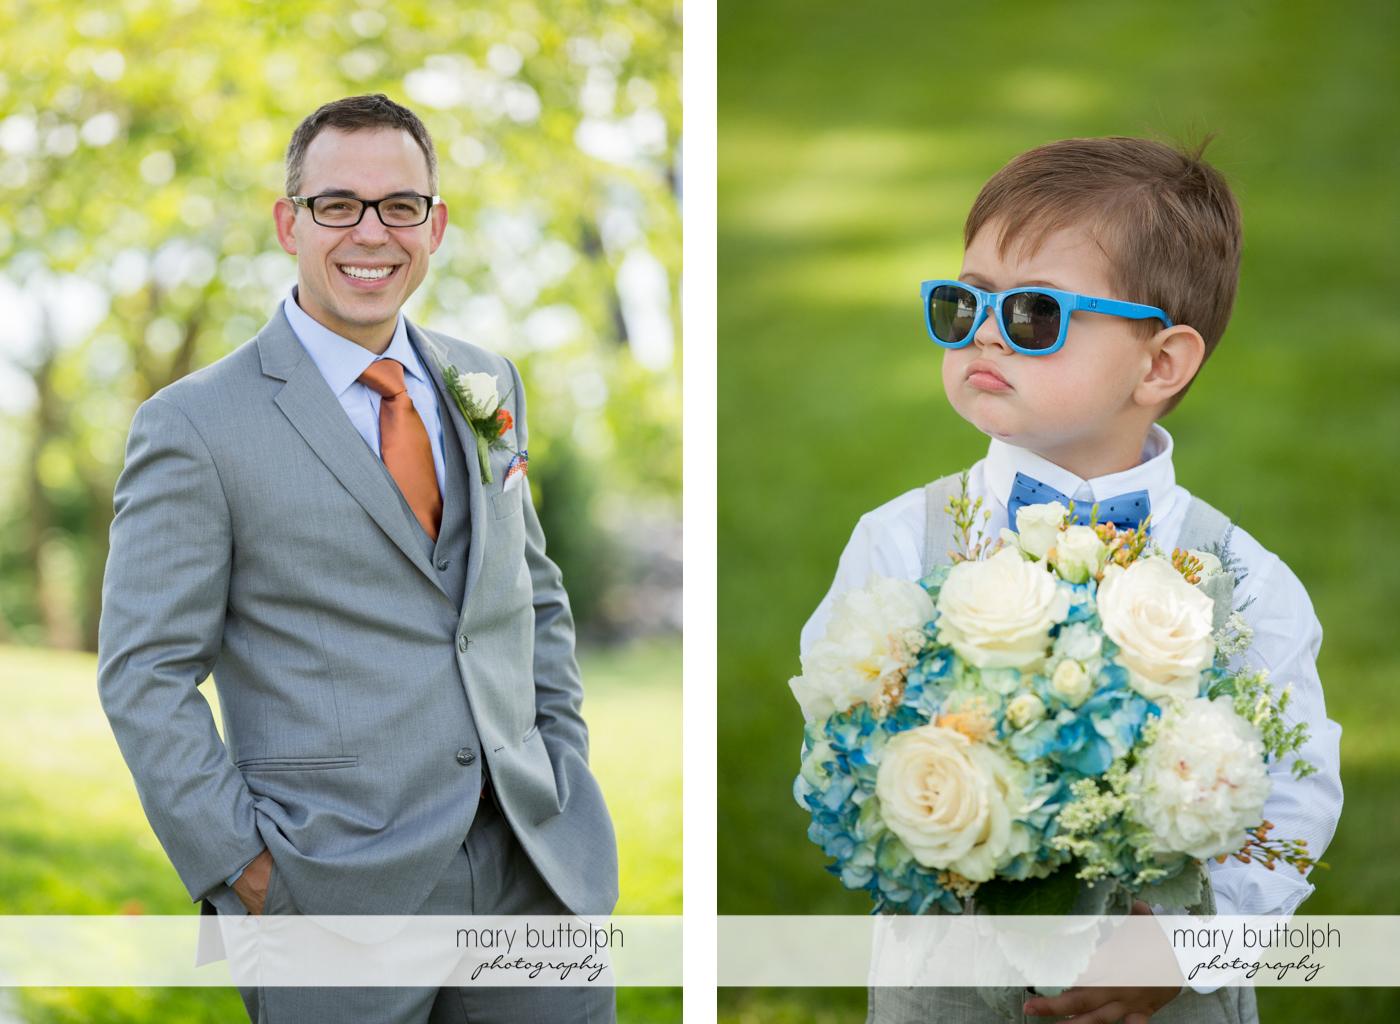 Groom and young boy with flowers pose in the garden at the Inns of Aurora Wedding